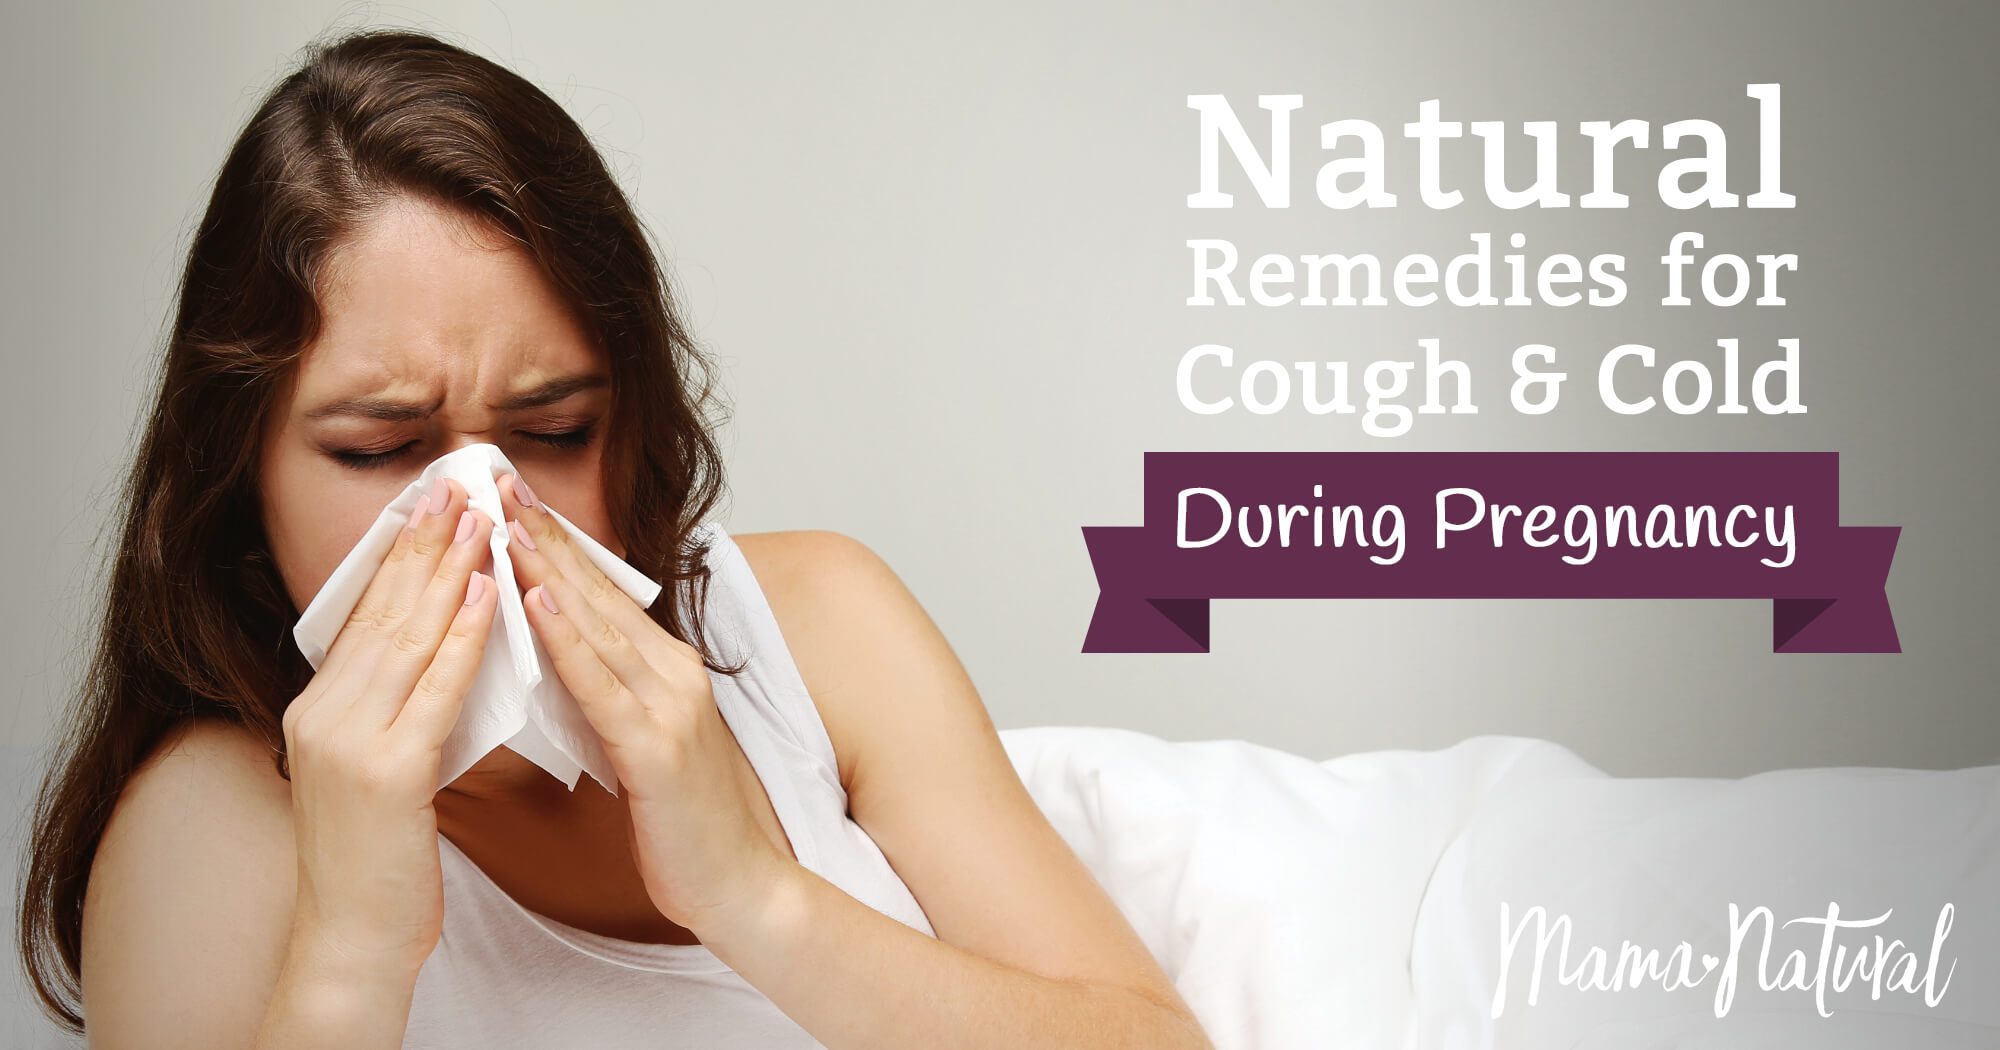 Pregnant And Have A Cold Natural Remedies